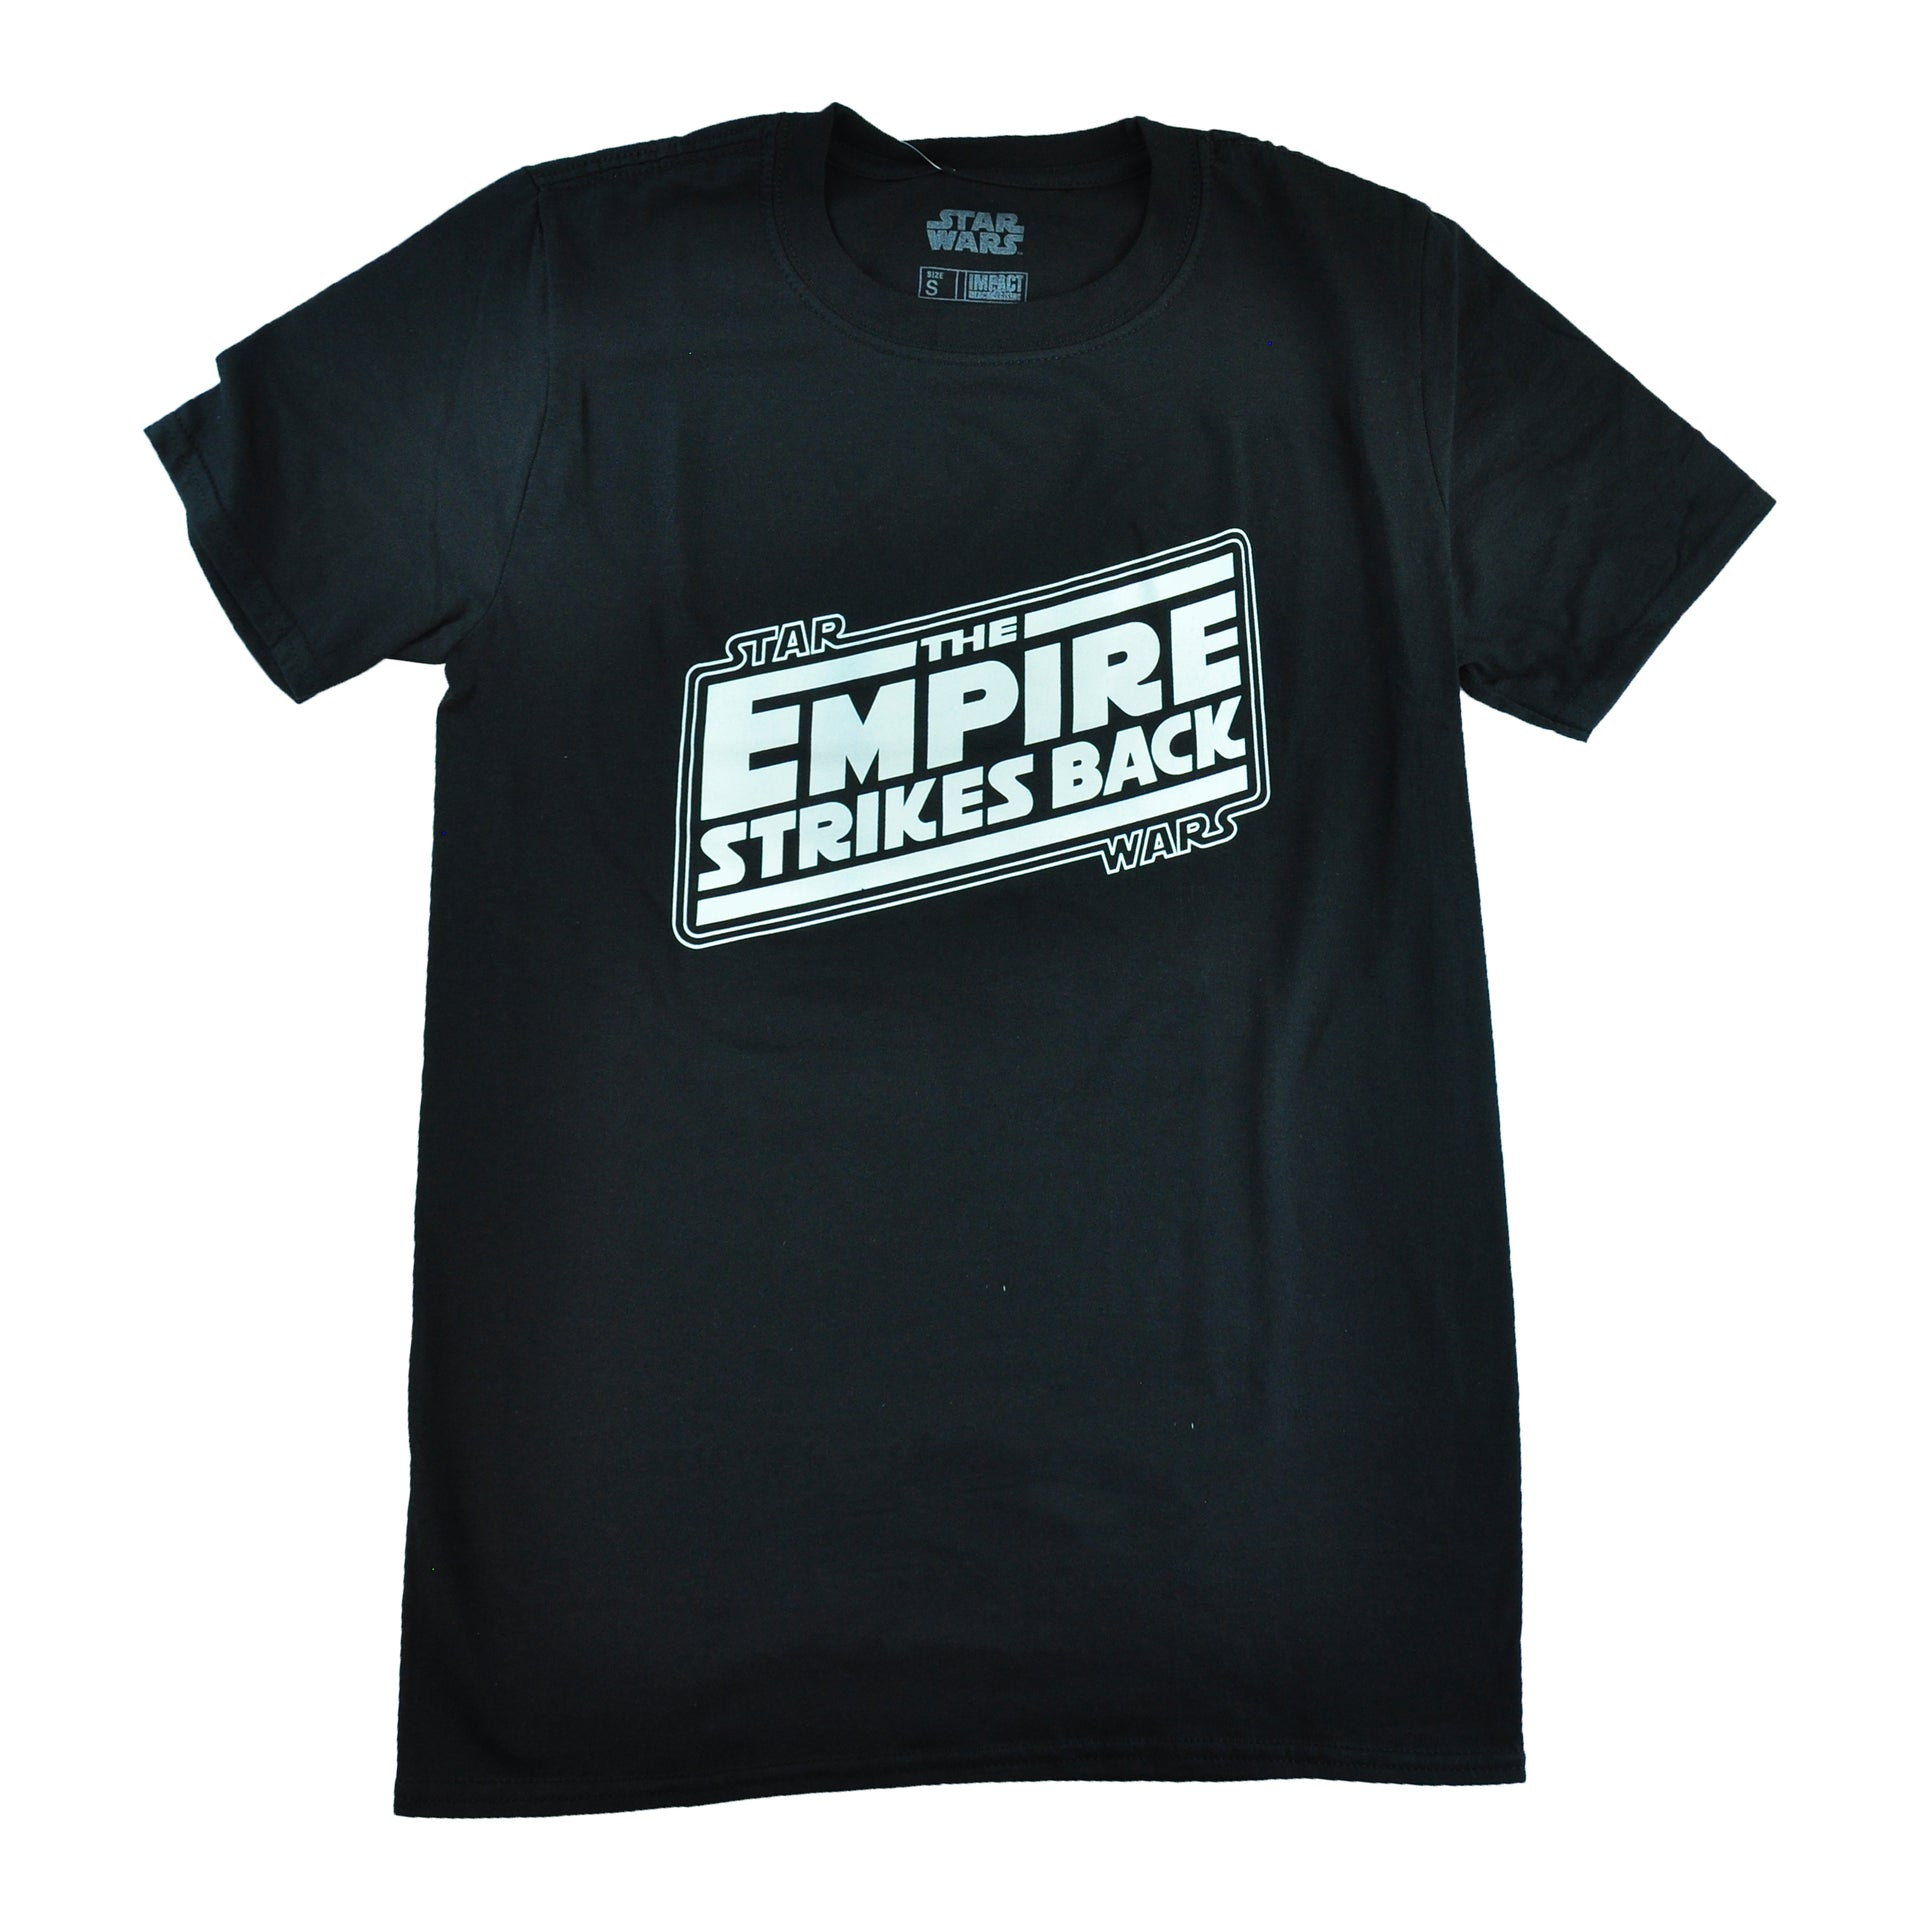 The Empire Strikes Back Tee